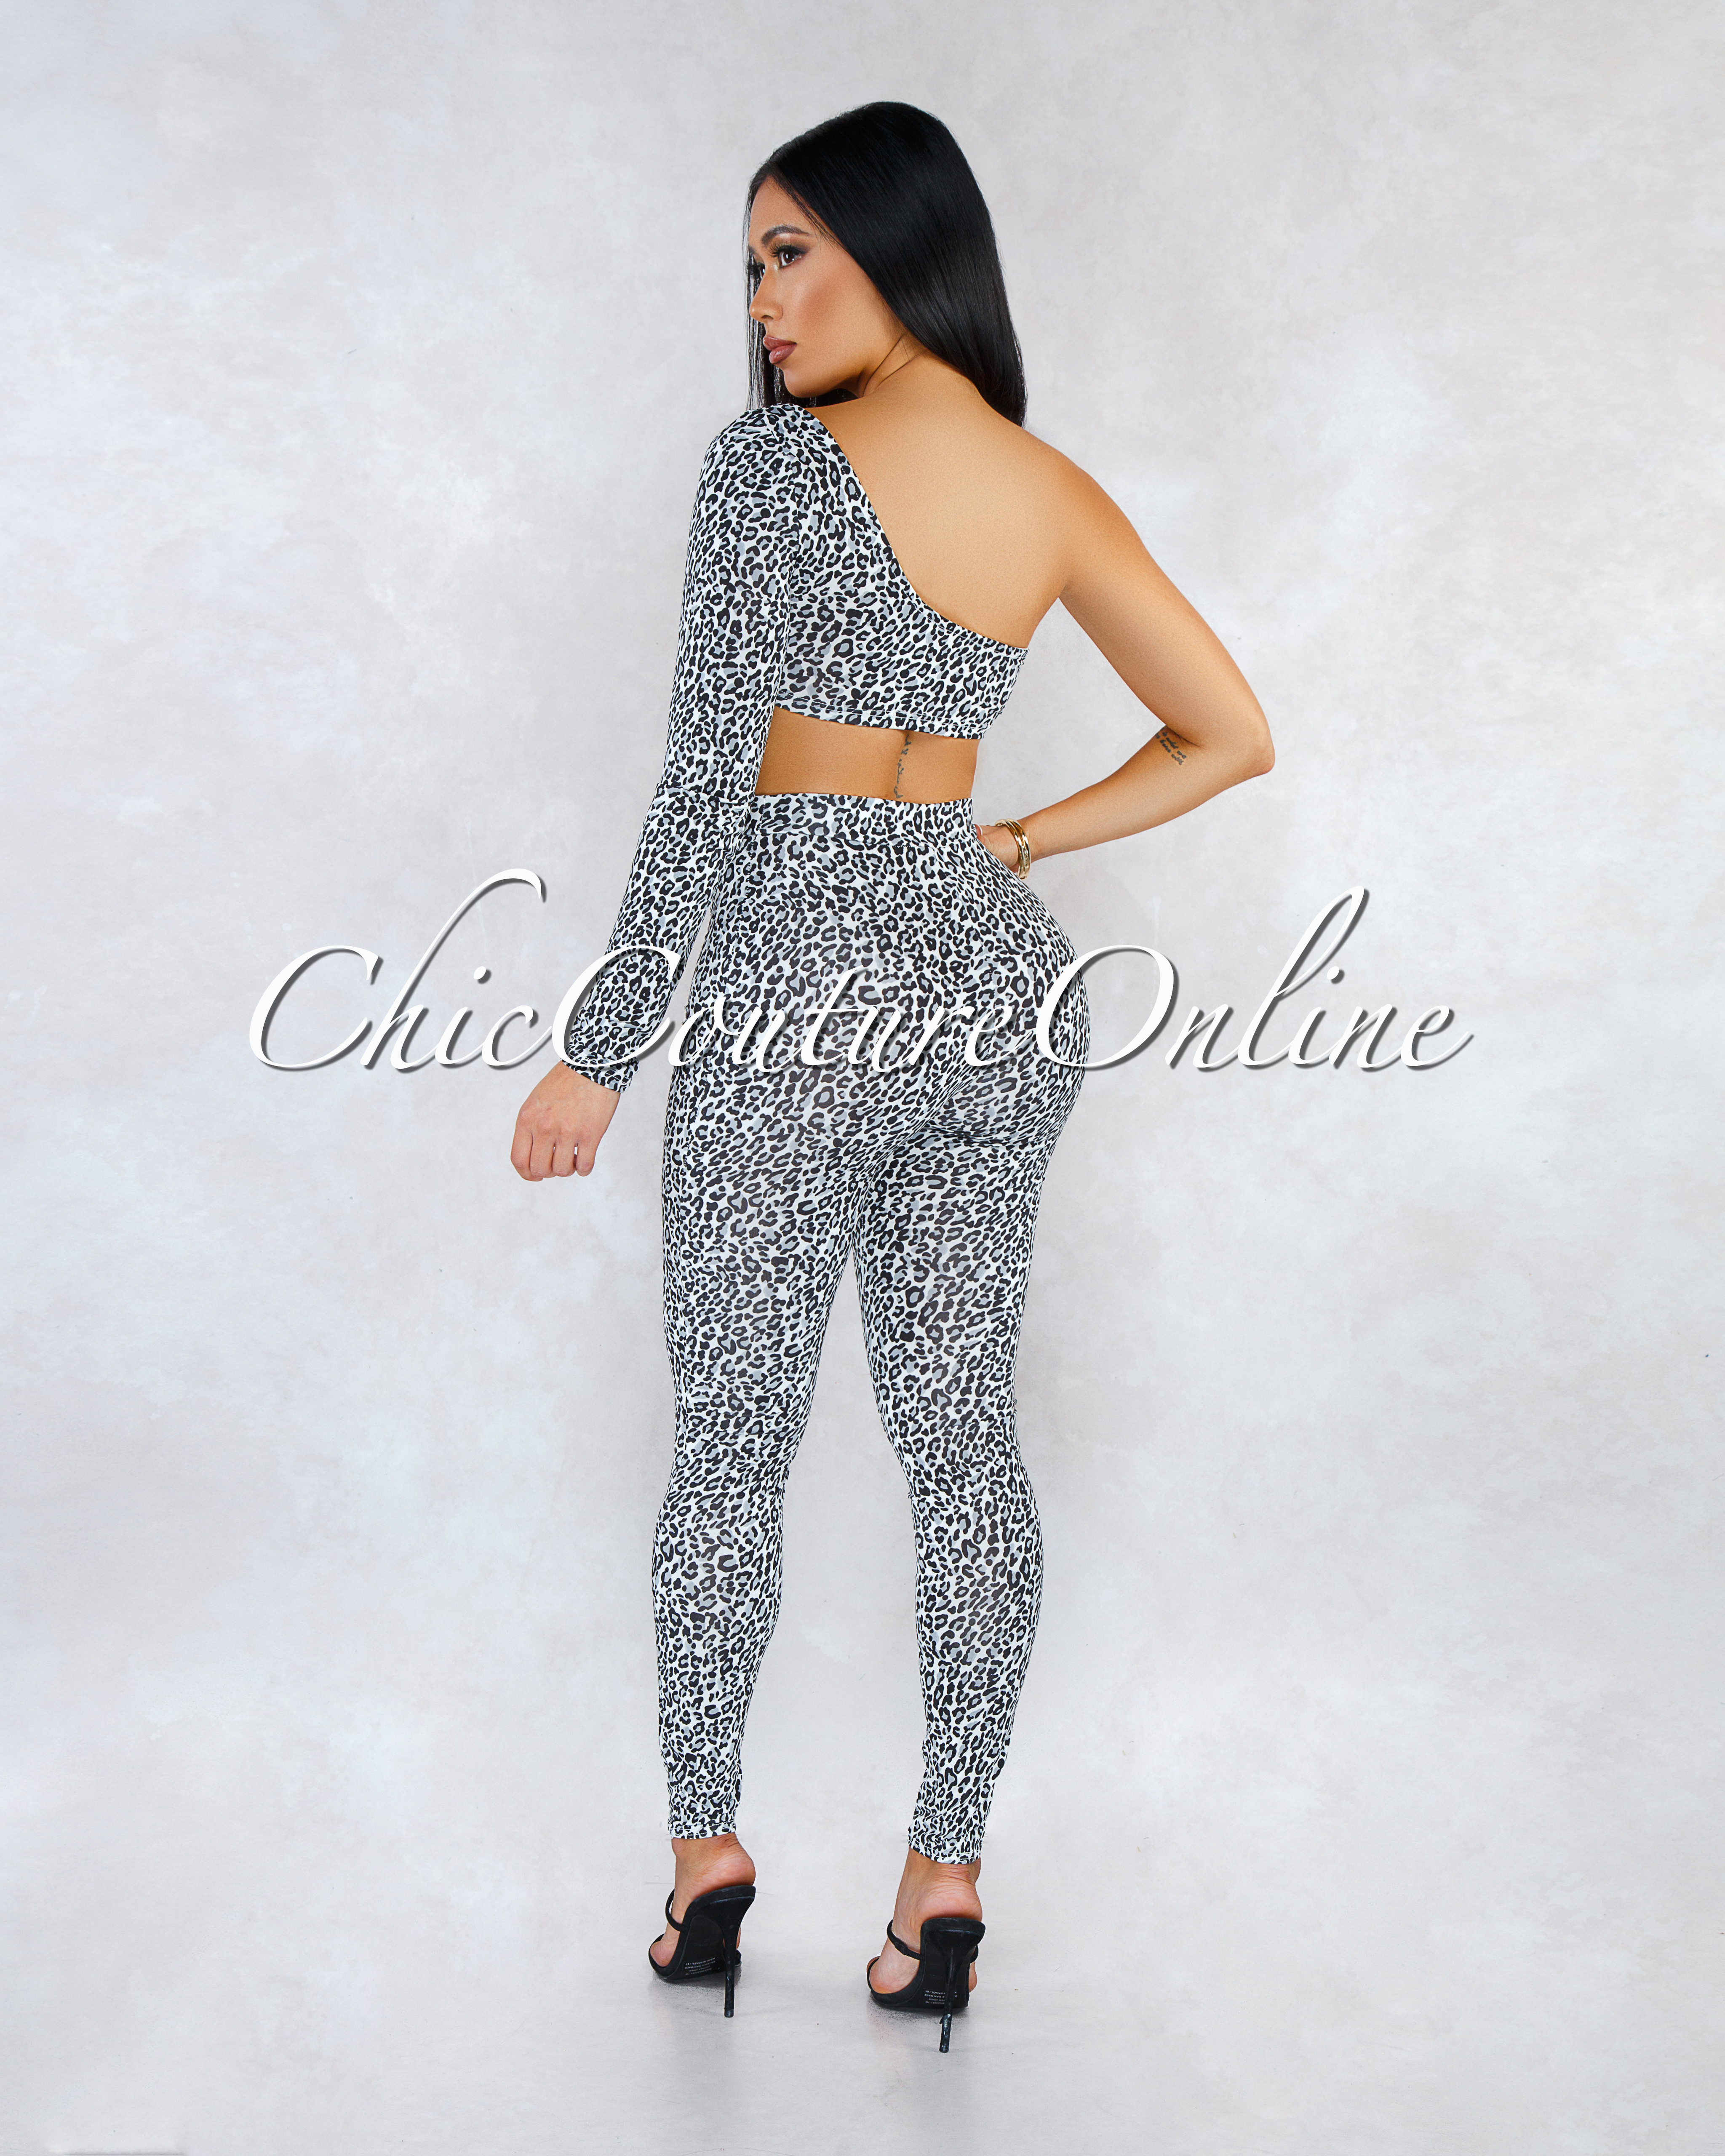 Athens White Gray Leopard Print Two Piece Leggings Set